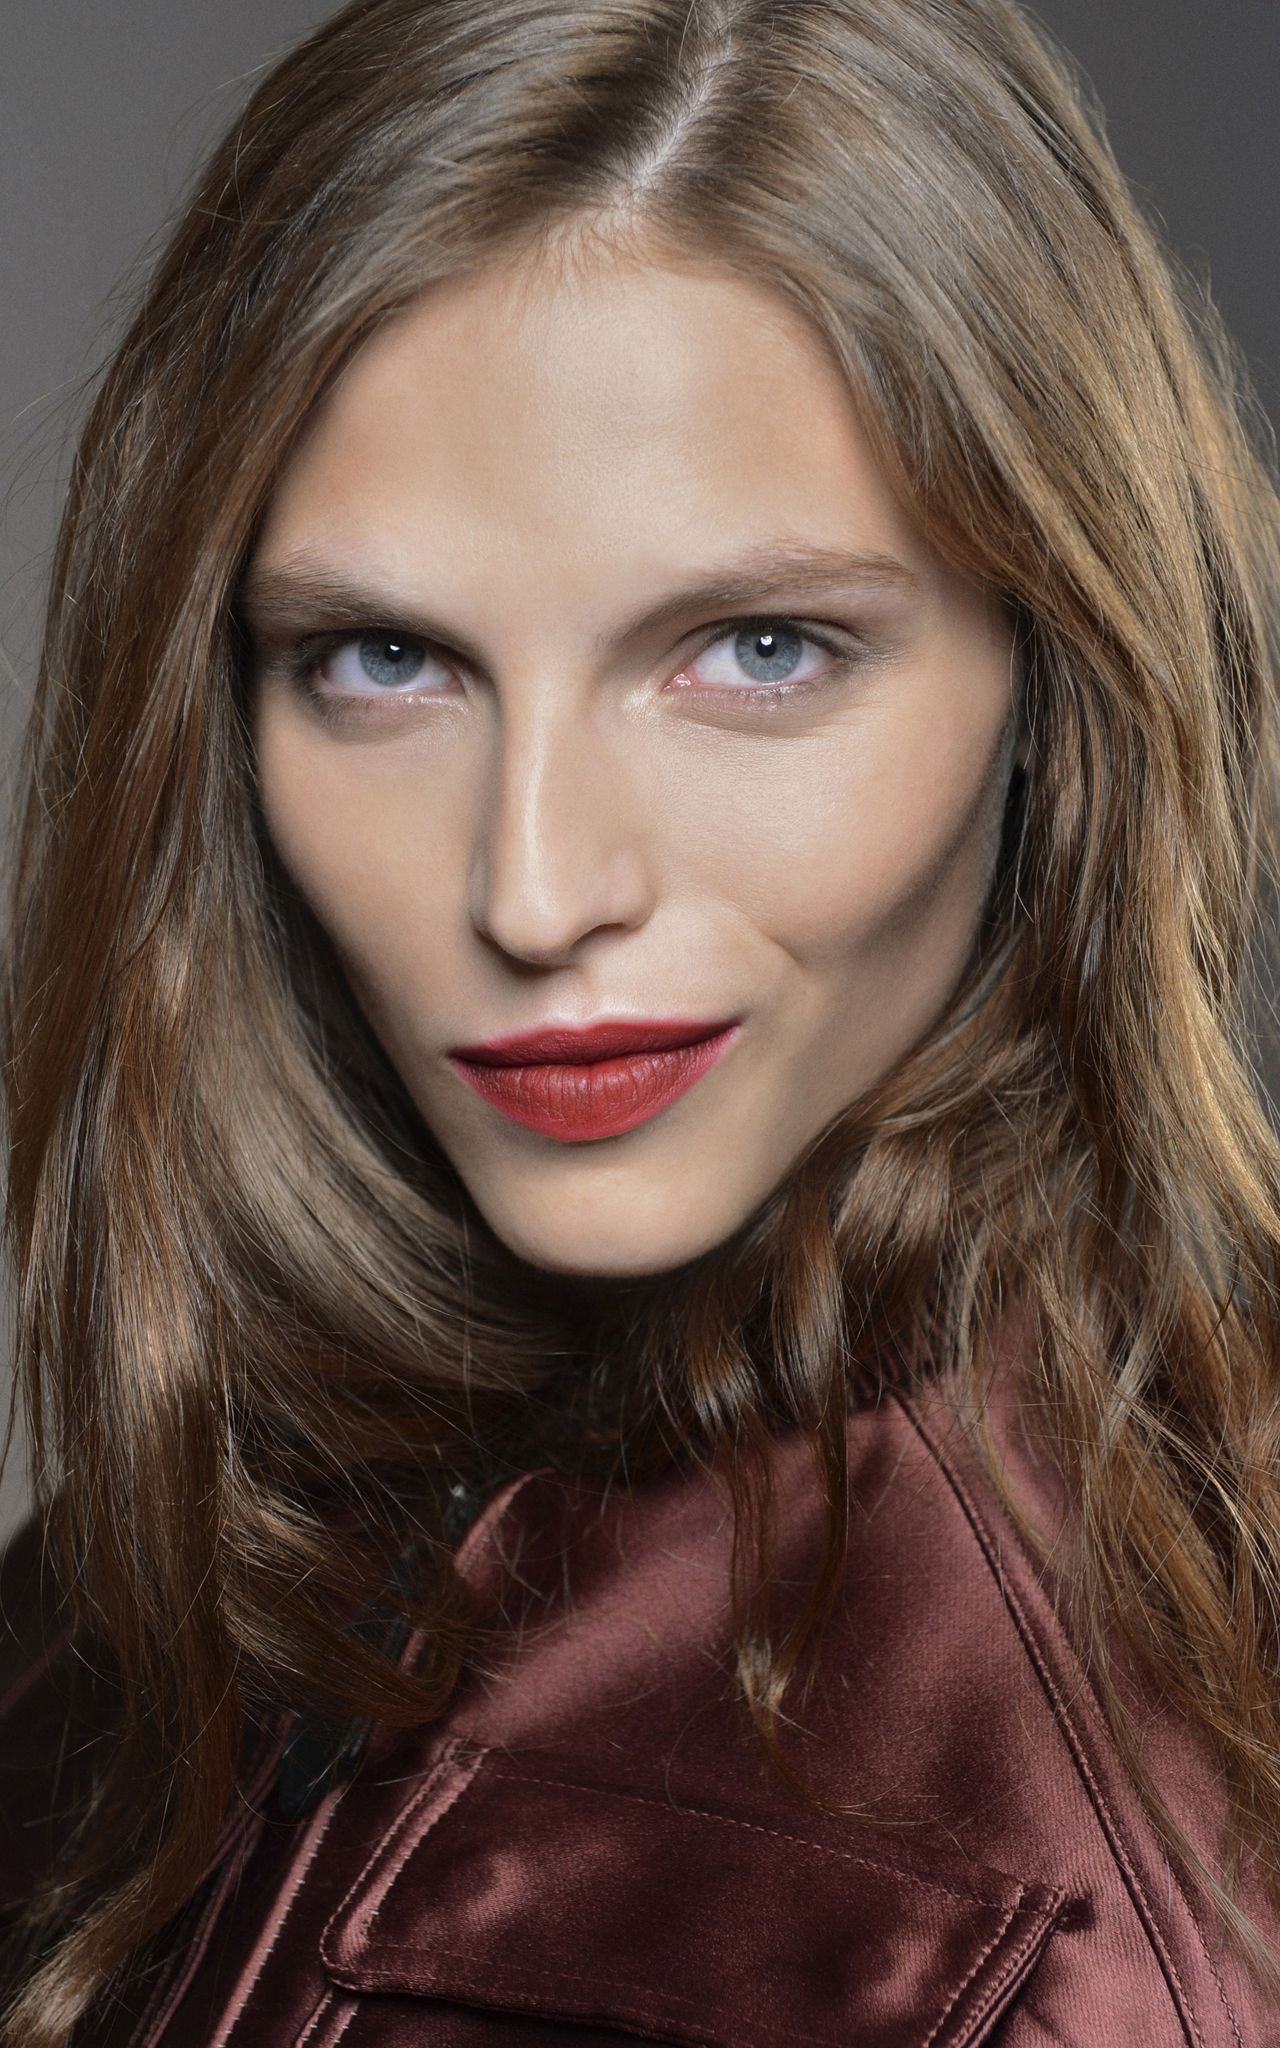 Burberry Beauty at the Spring/Summer 2013 show